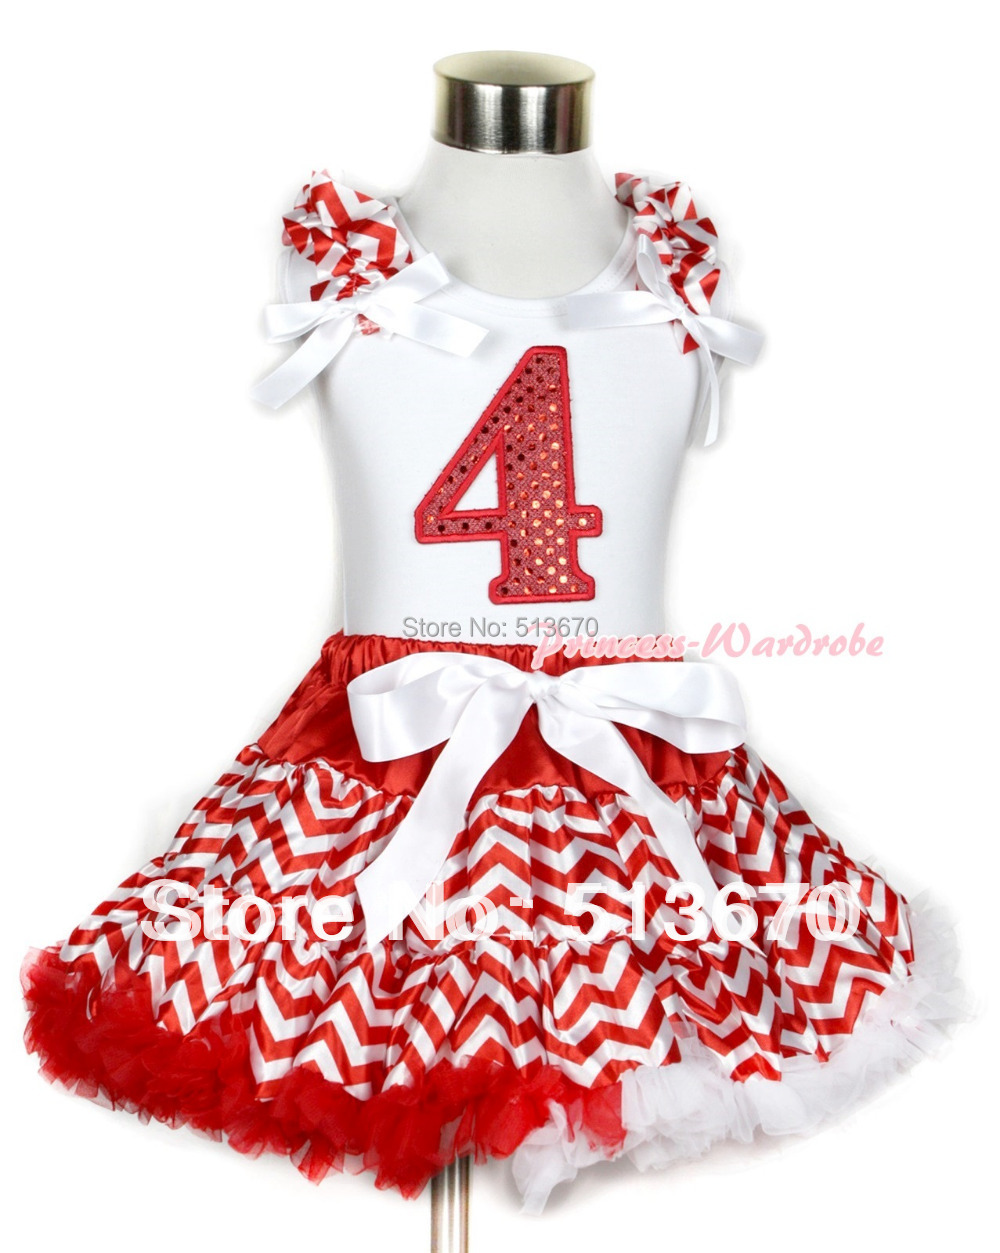 Xmas White Tank Top with 4th Sparkle Red Birthday Number Red White Wave Ruffles  White Bow & Red White Wave Pettiskirt MAMG749 xmas white tank top 2nd sparkle red birthday number with red snowflakes ruffles